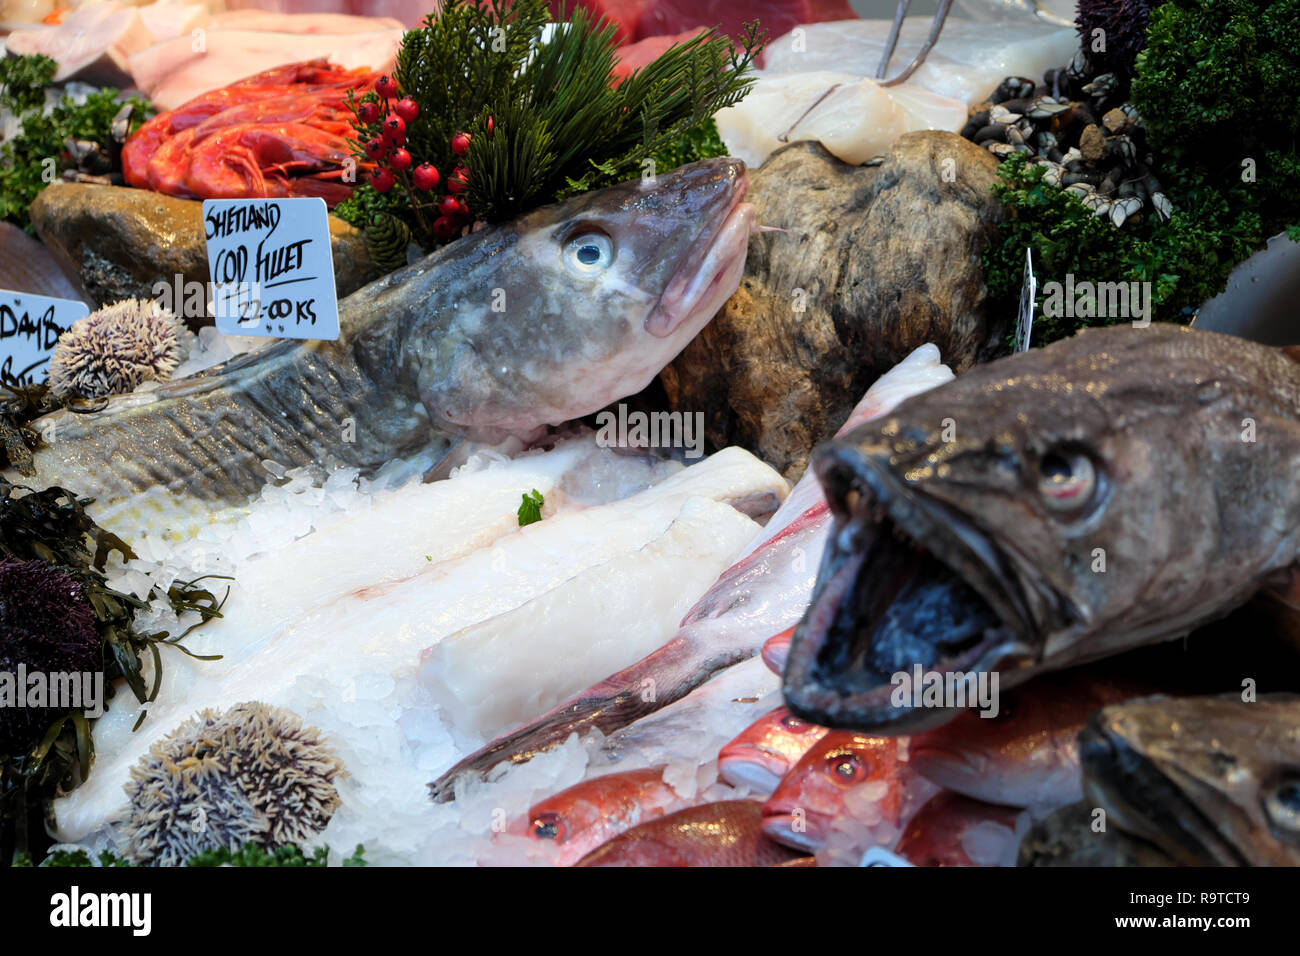 Borough Market London fish stall selling fresh Shetland Cod Fillet, Senegalese Red Snapper and Monkfish on ice South London England UK  KATHY DEWITT Stock Photo